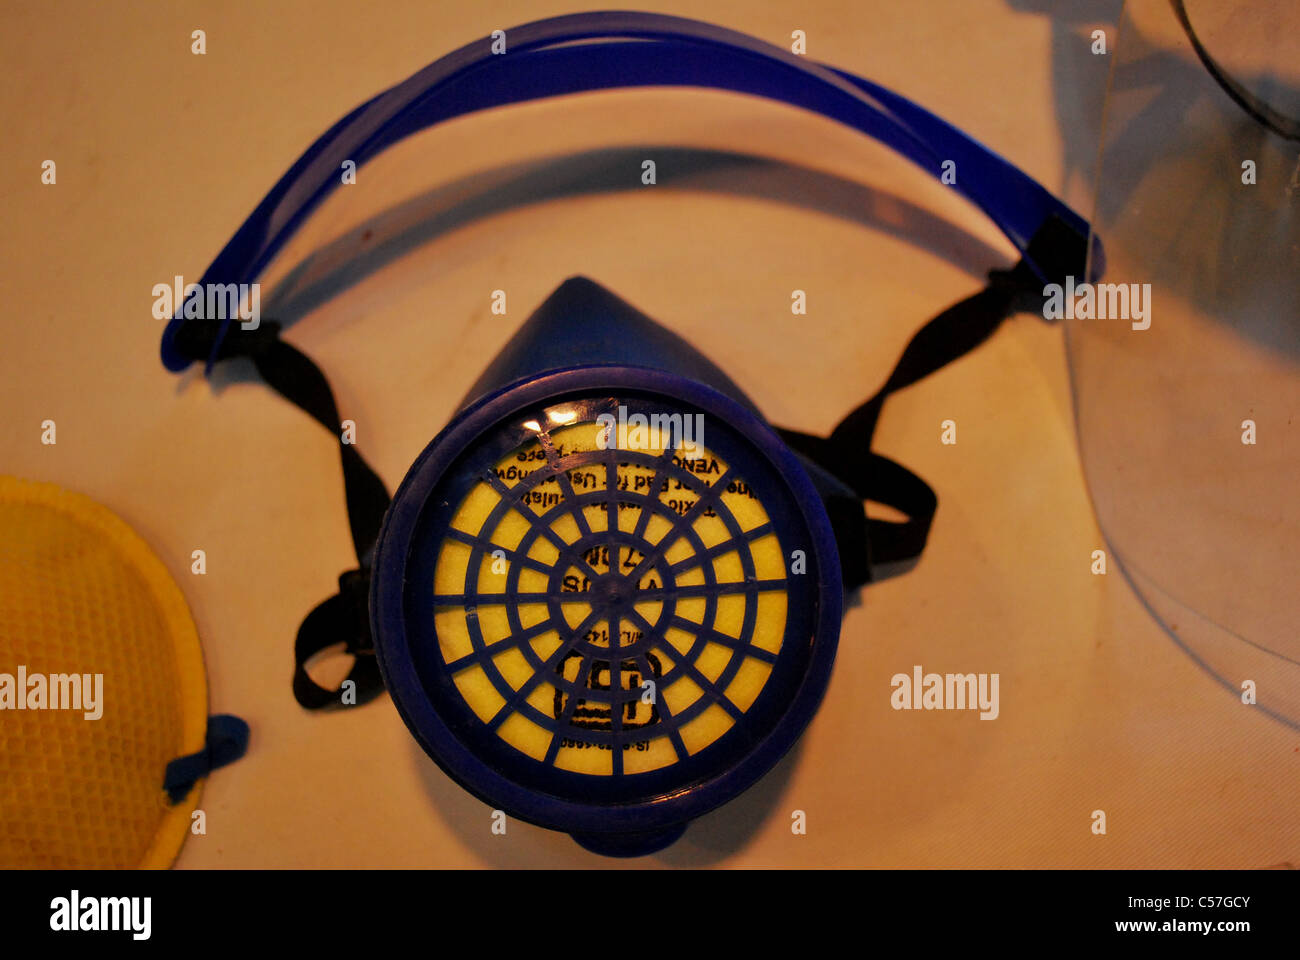 dust respirator close-up - Stock Image